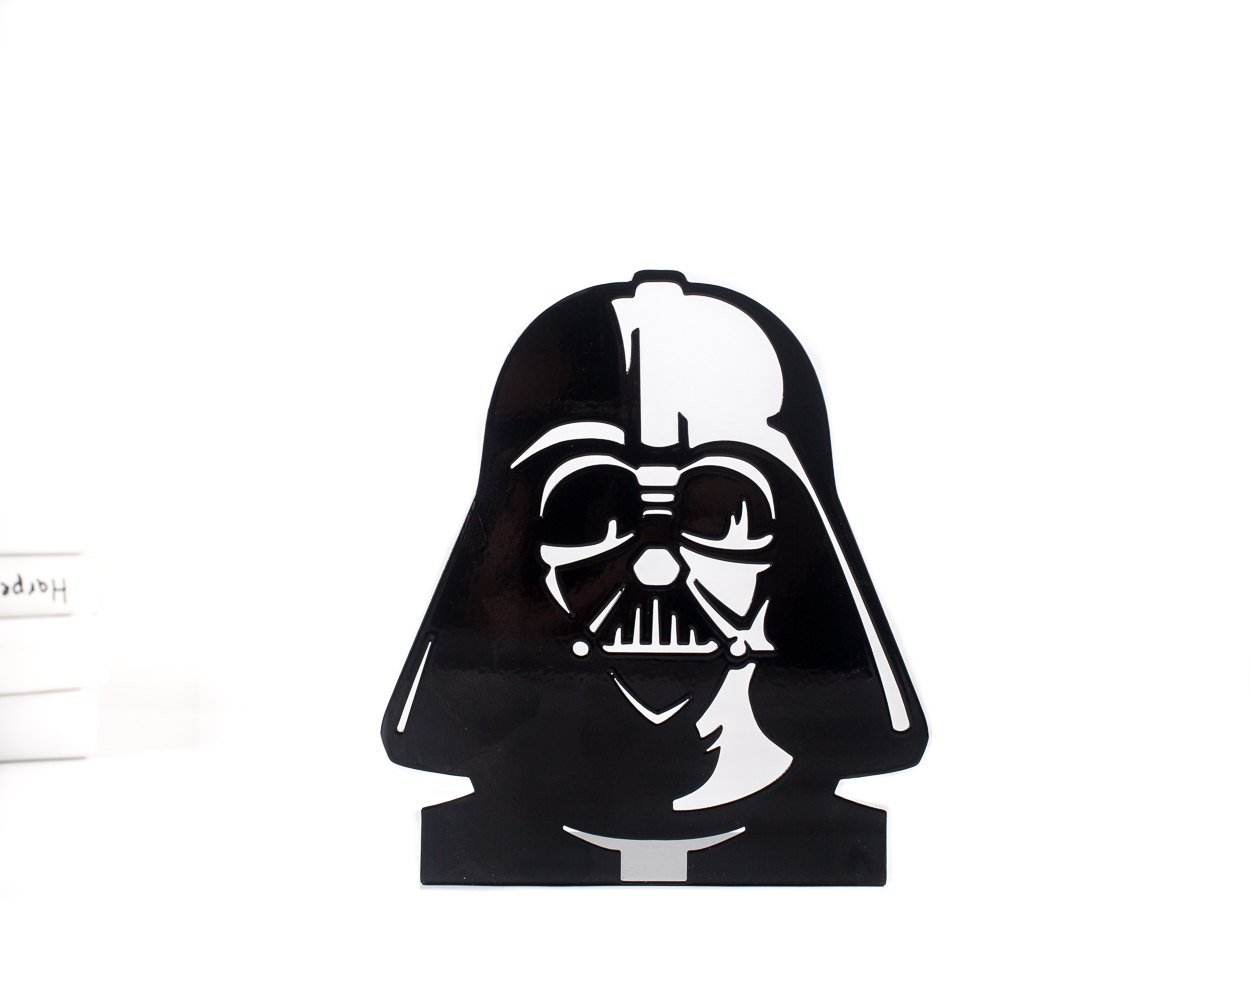 One Decorative bookend // Darth Vader // modern functional decor for the Star Wars books // FREE SHIPPING // perfect housewarming gift - Design Atelier Article